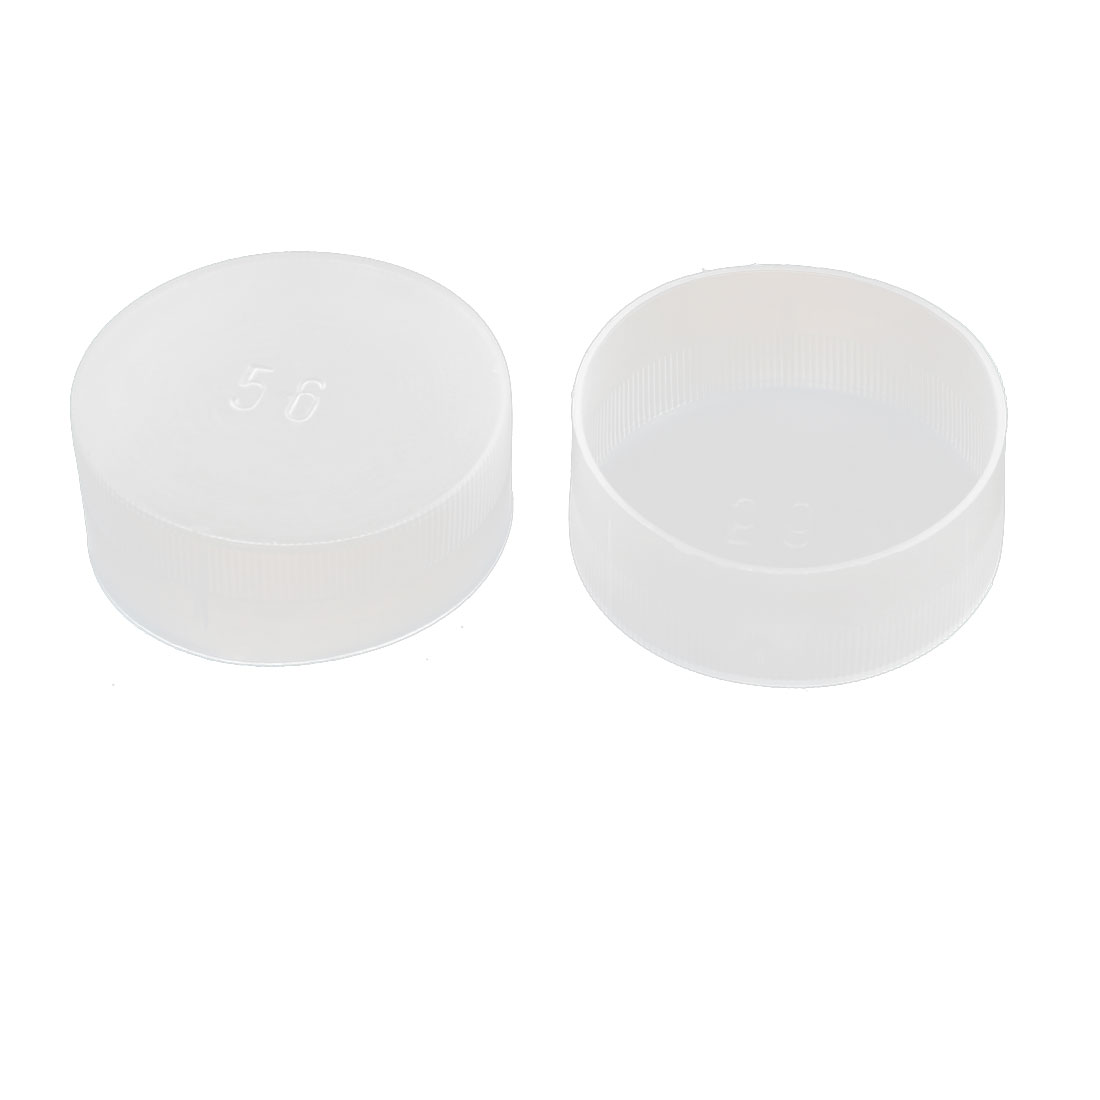 2pcs White Plastic Thread Round Cabinet Chair Leg Insert Cover Protector